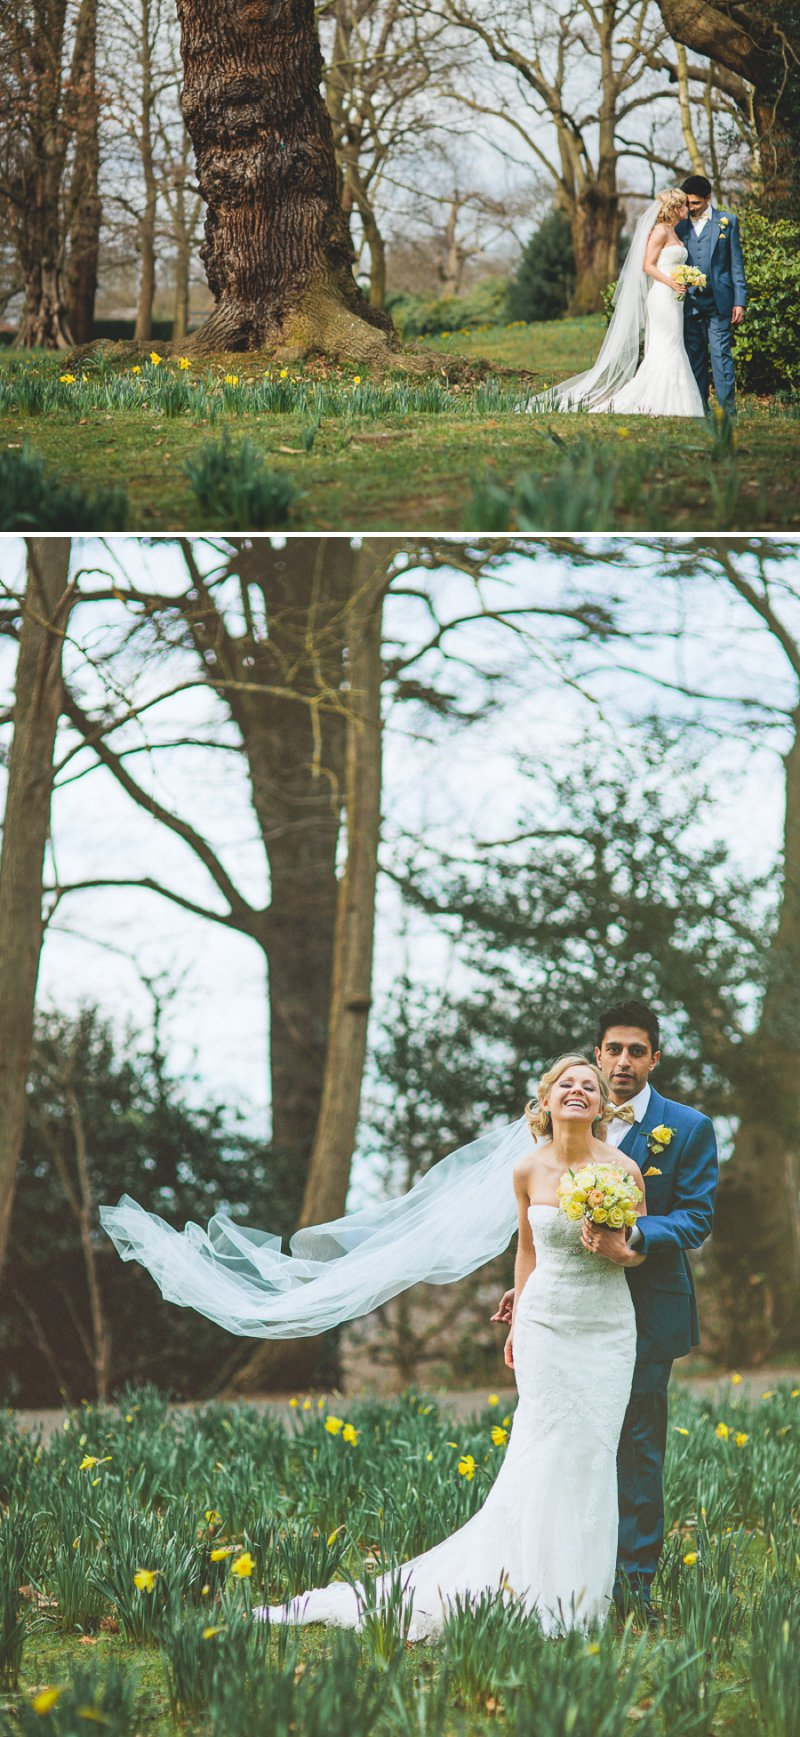 Yellow Themed Vintage Inspired Easter Wedding At Pembroke Lodge Richmond Park With Bride In Balira By Pronovias And Burberry Sandals With Groom In Blue Reiss Suit And Bridesmaids In Yellow Vintage Dresses With Images By Shell De Mar 8